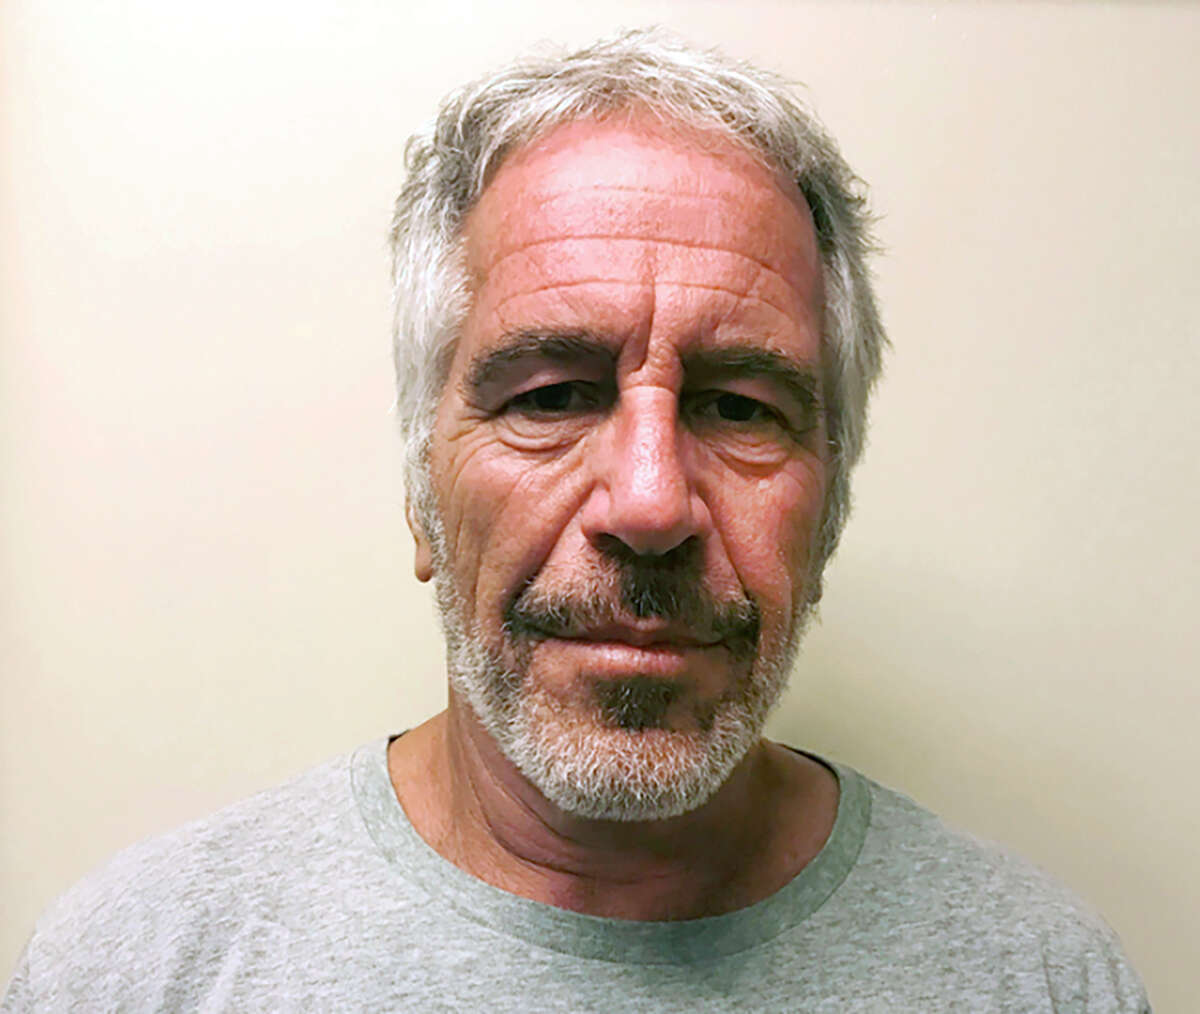 FILE - This March 28, 2017, file photo, provided by the New York State Sex Offender Registry, shows Jeffrey Epstein. Two correctional officers responsible for guarding Jeffrey Epstein the night before he took his own life are expected to face criminal charges this week for falsifying prison records. Thata€™s according to two people familiar with the matter. The federal charges could come as soon as Tuesday and are the first in connection with Epsteina€™s death.. (New York State Sex Offender Registry via AP, File)